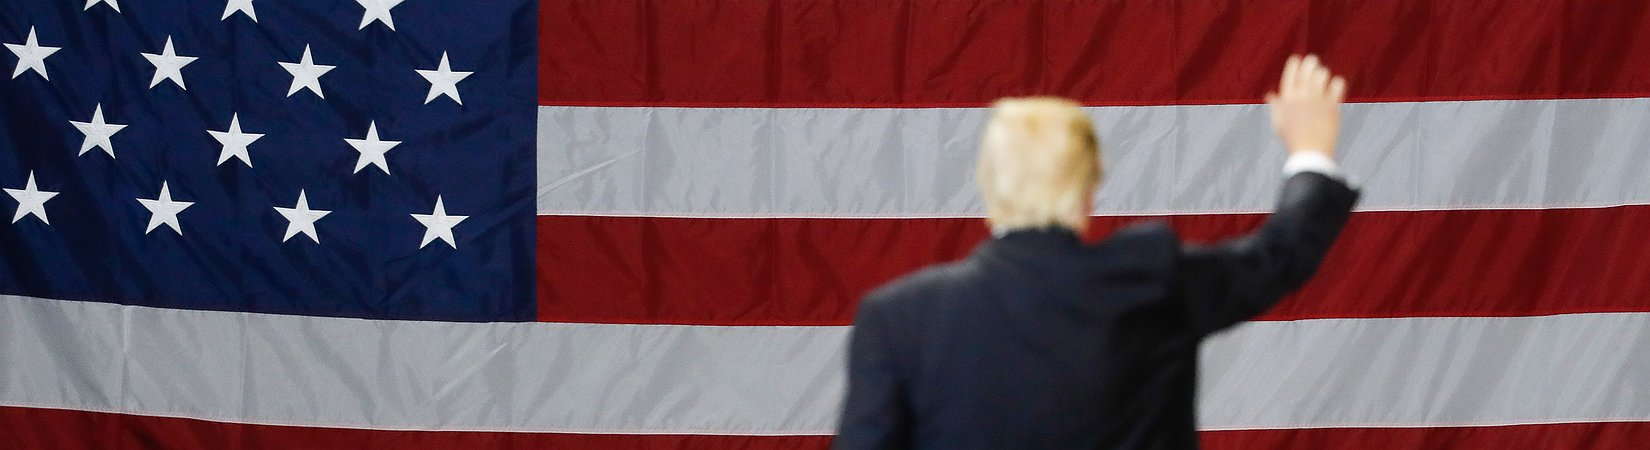 Il primo bollettino economico dell'era Trump